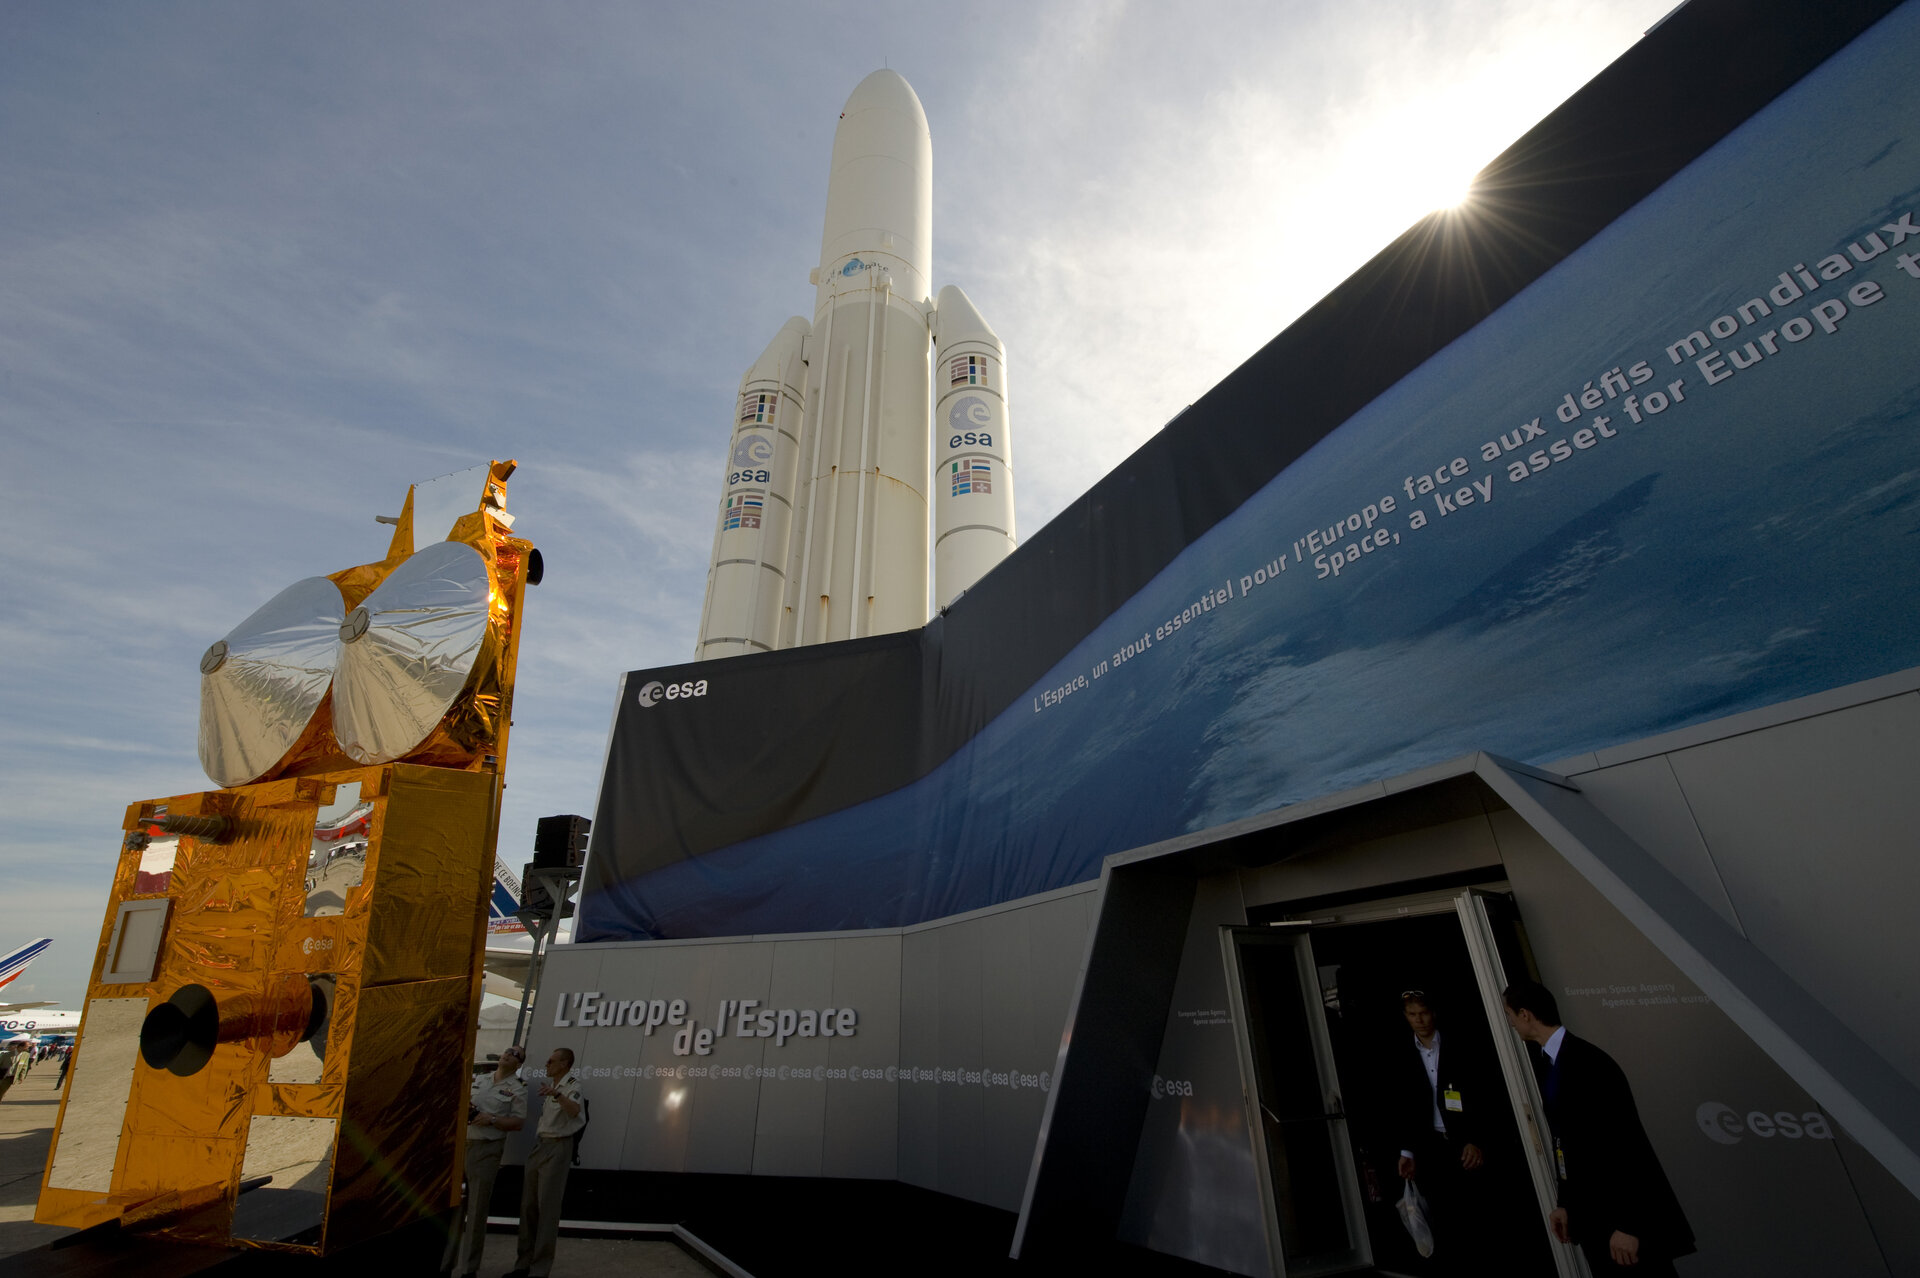 ESA Pavilion at the Paris Air Show, Le Bourget